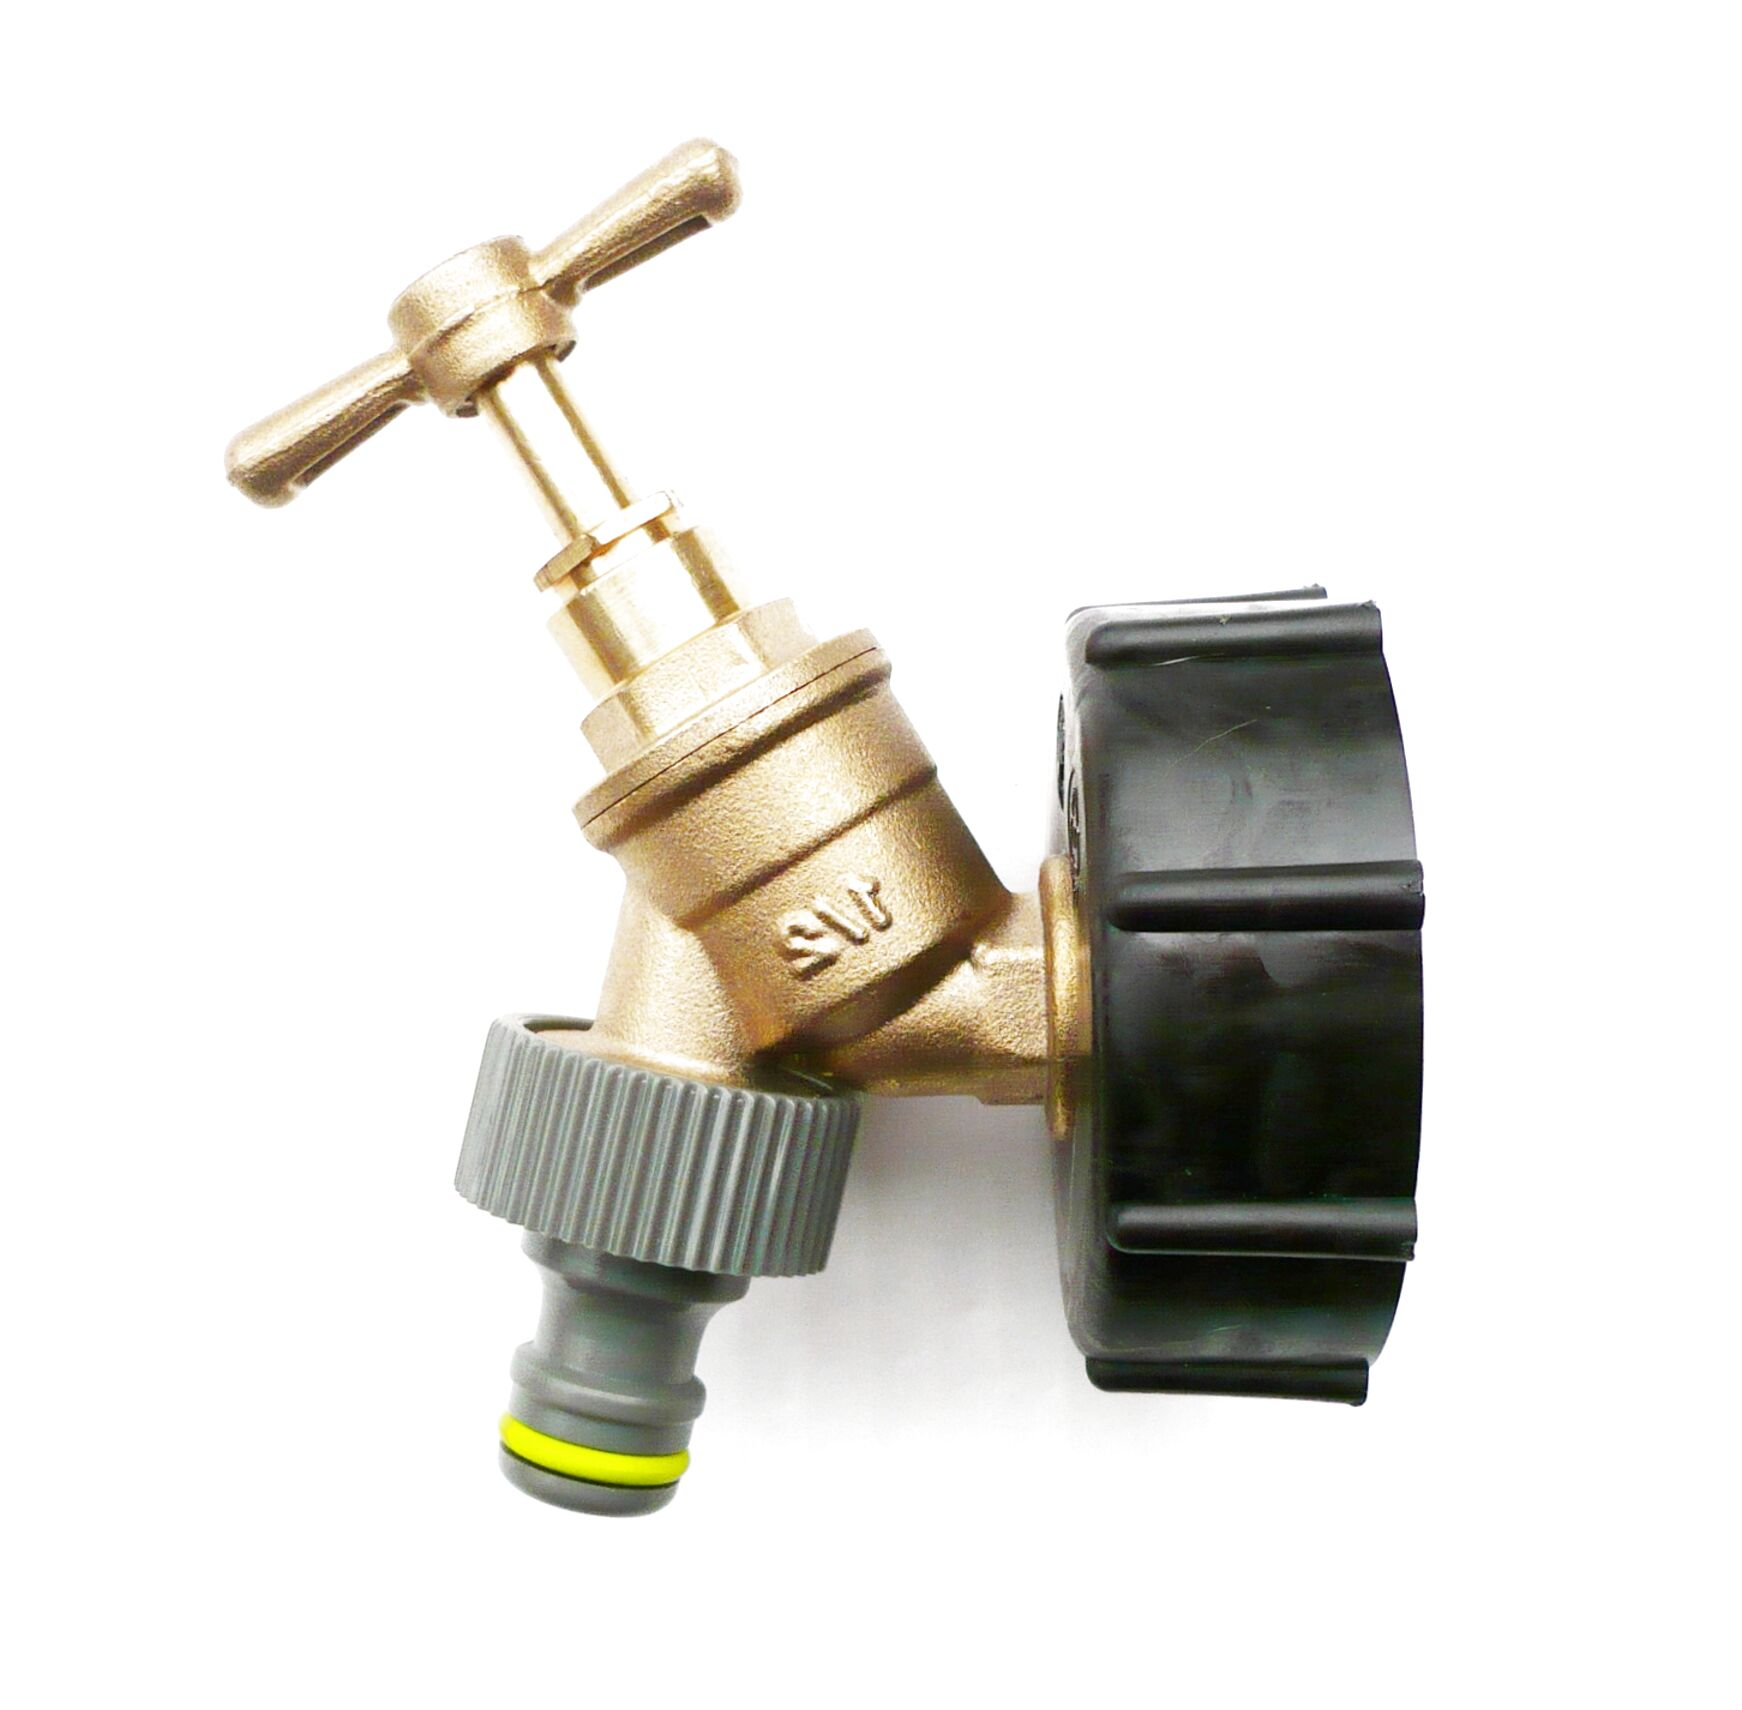 ibc tank connector for sale